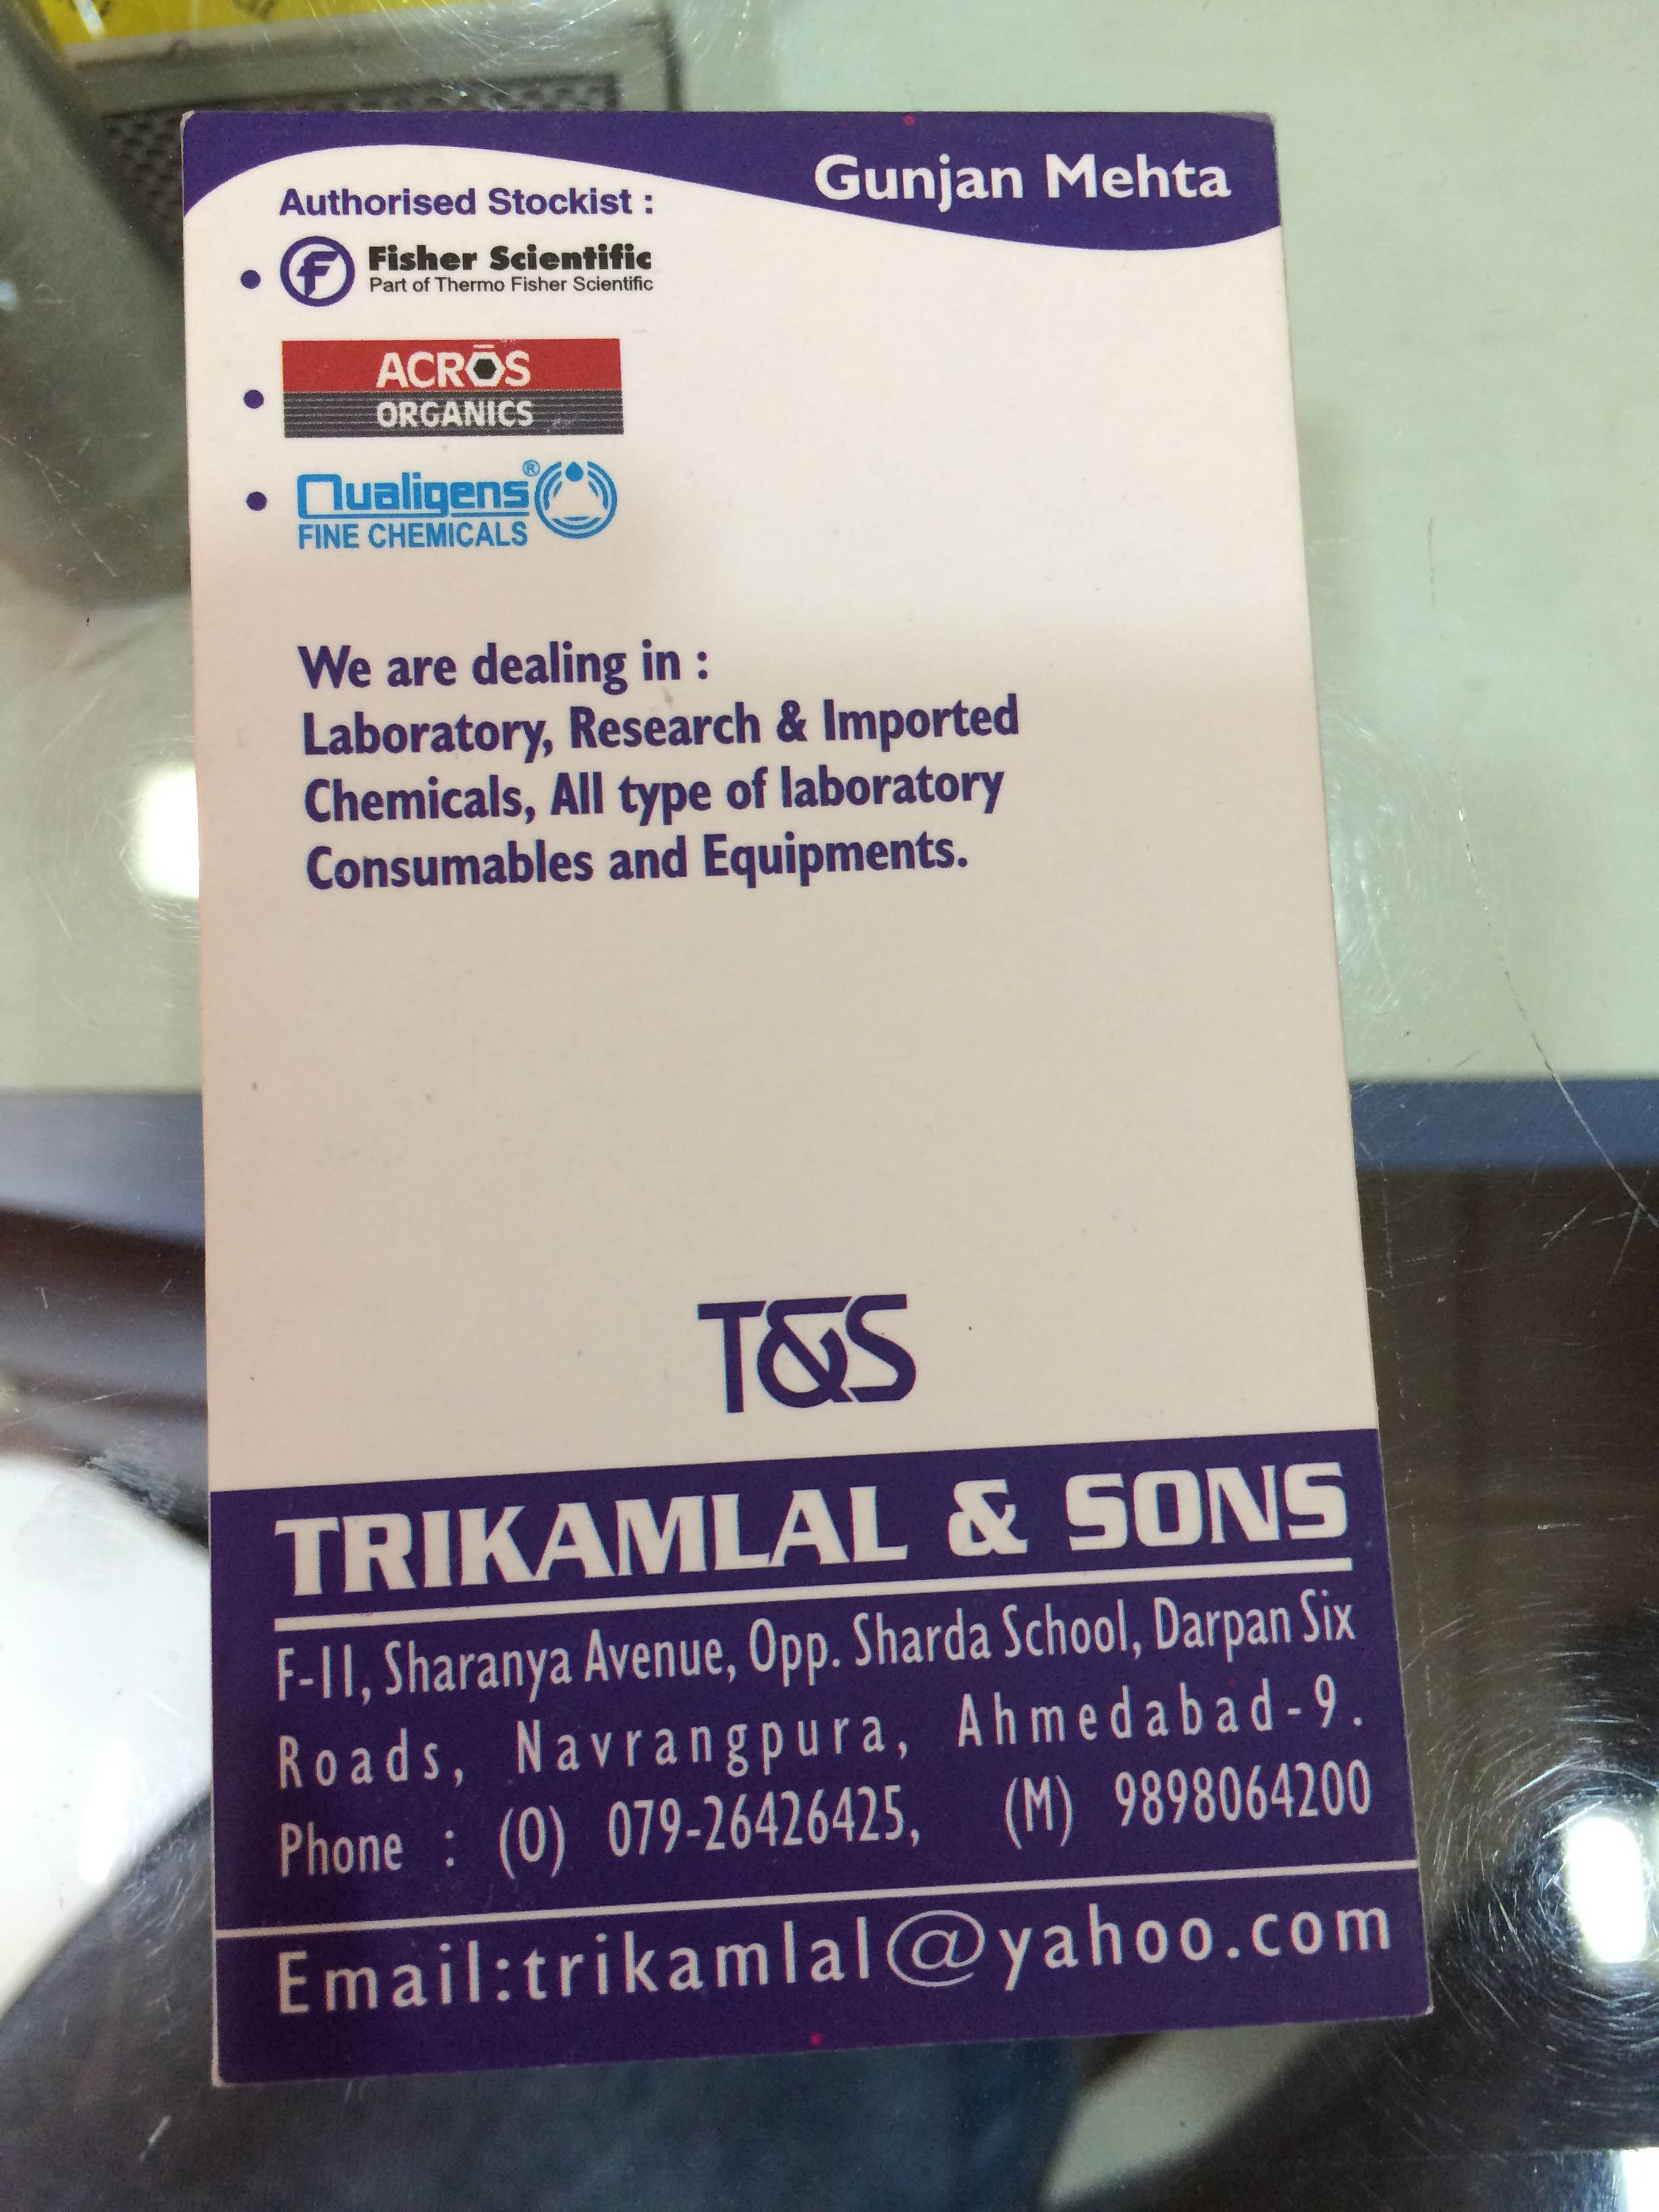 Trikamlal & Sons is dealing in laboratory , research & imported chemicals.